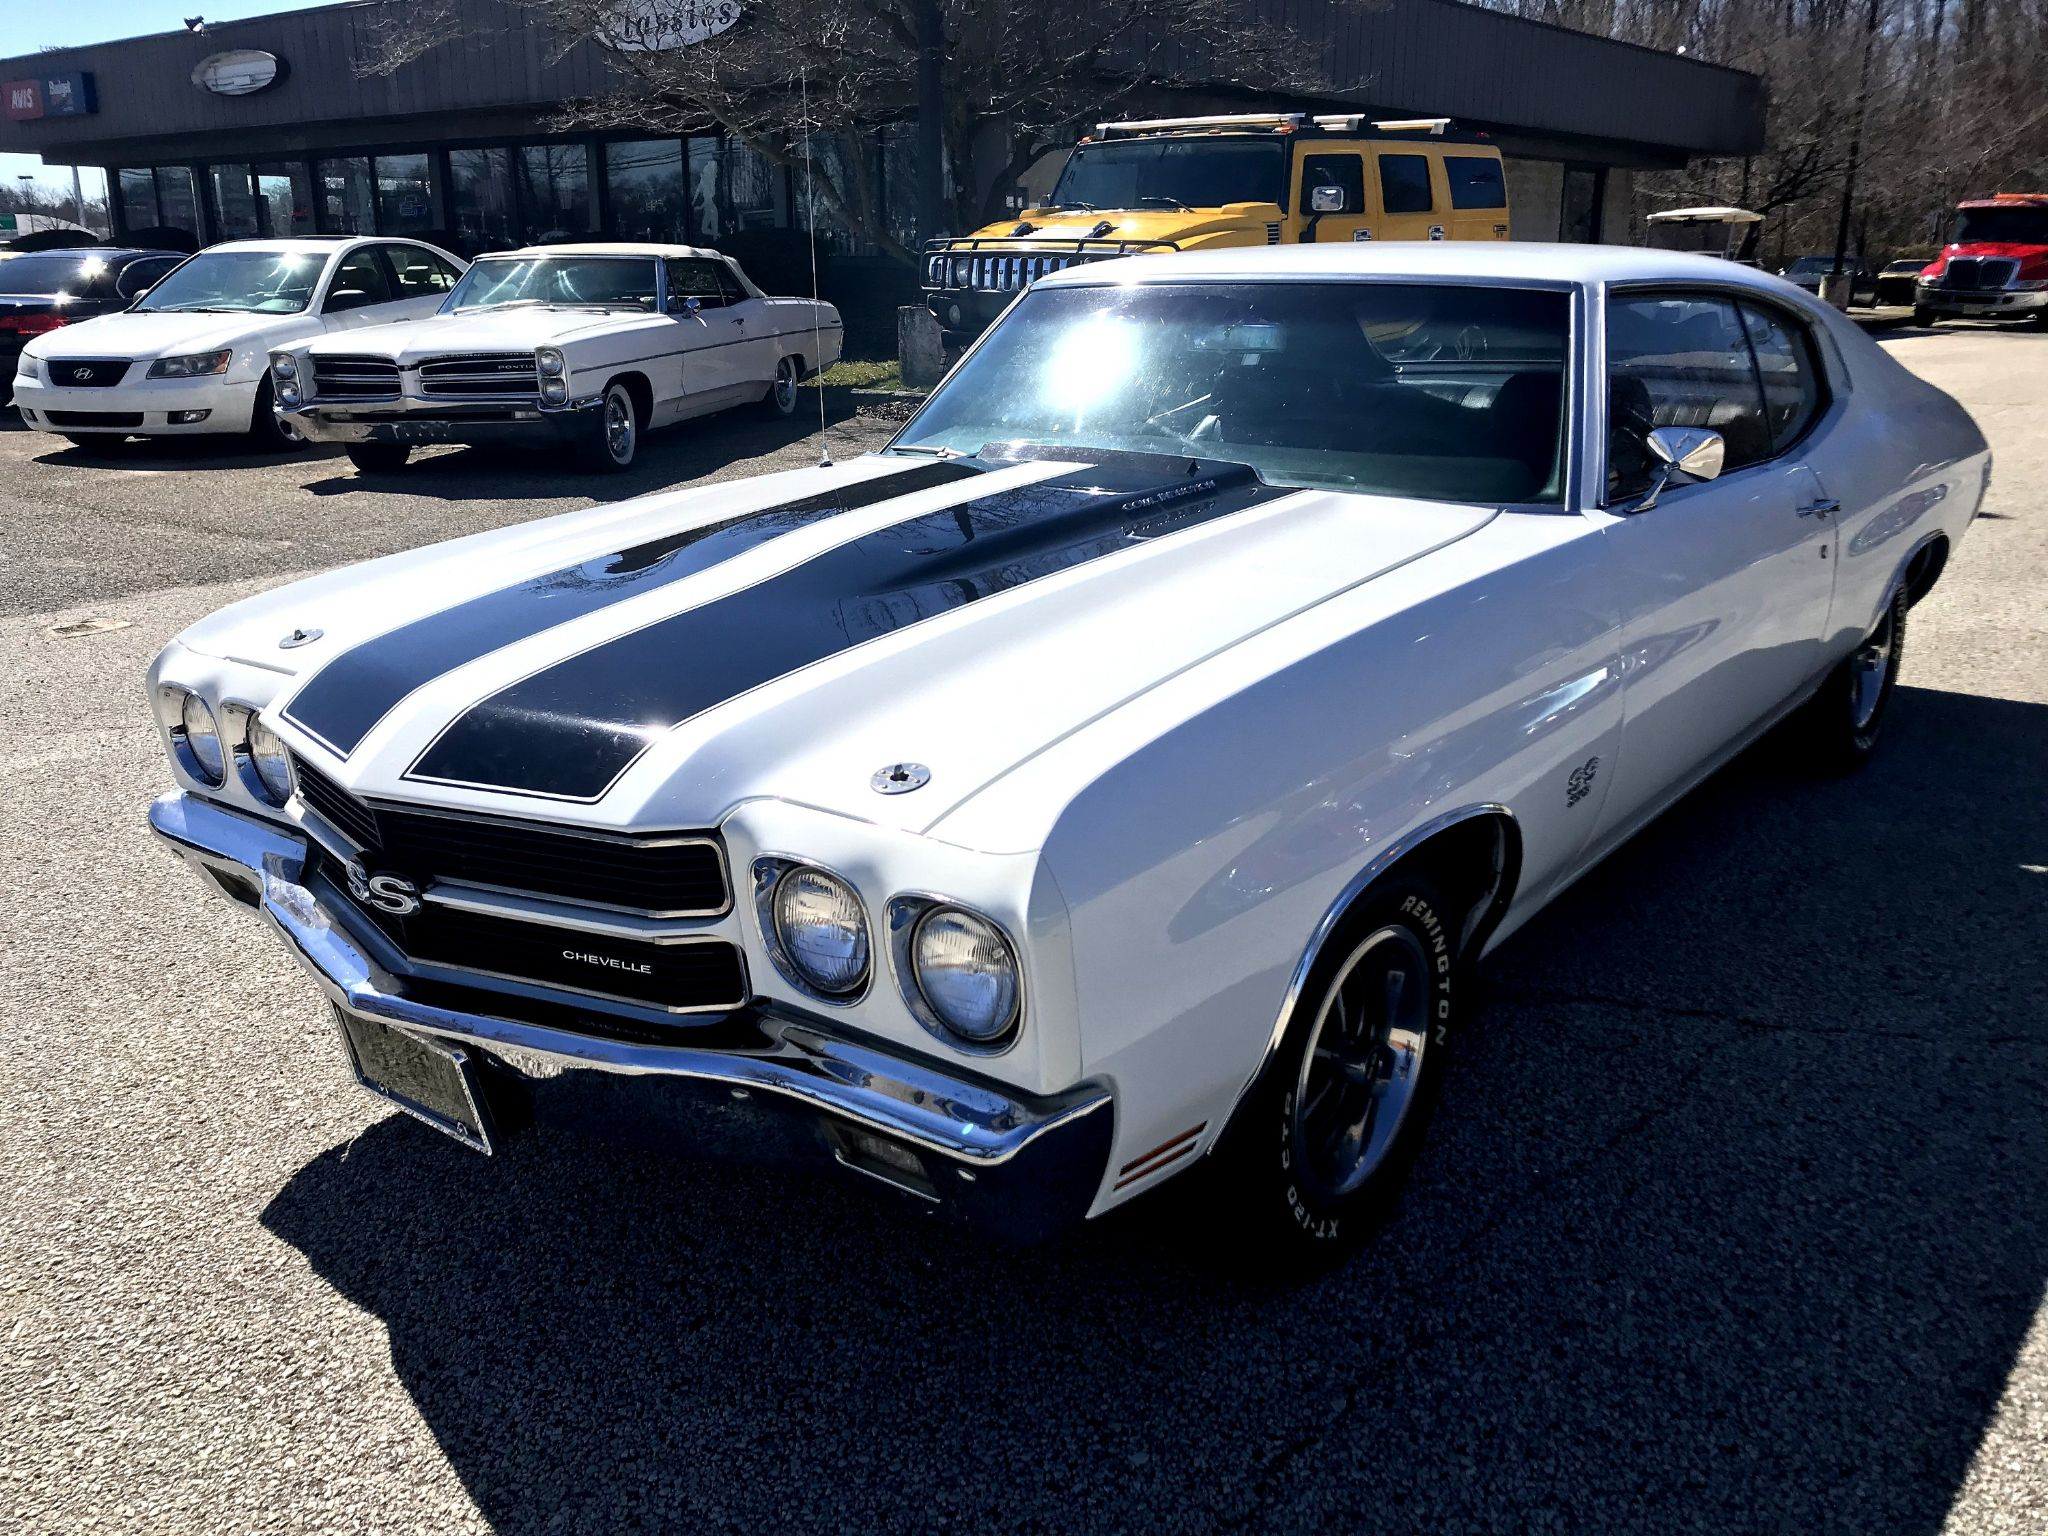 1970 Chevrolet Chevelle Ss 396 Four Speed Hard Top For Sale